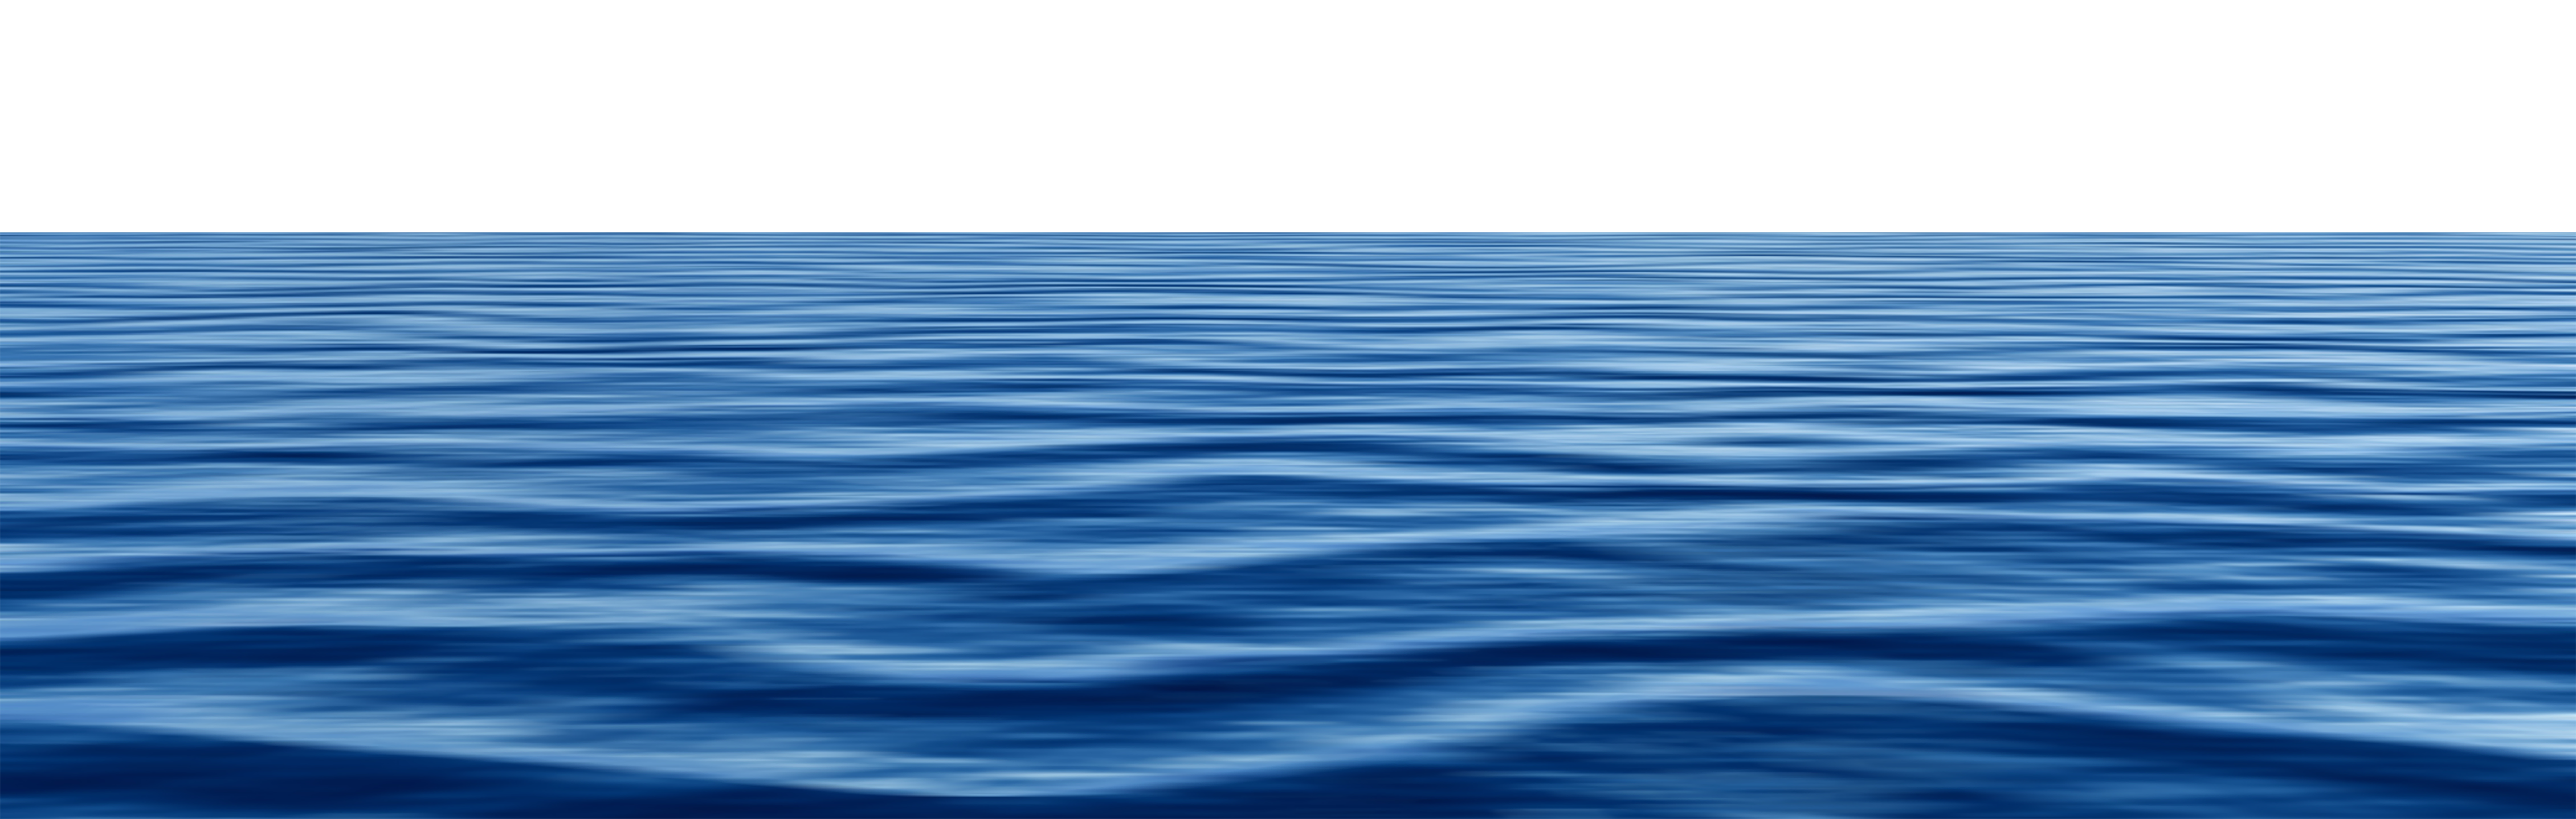 Clipart ocean ground.  collection of transparent